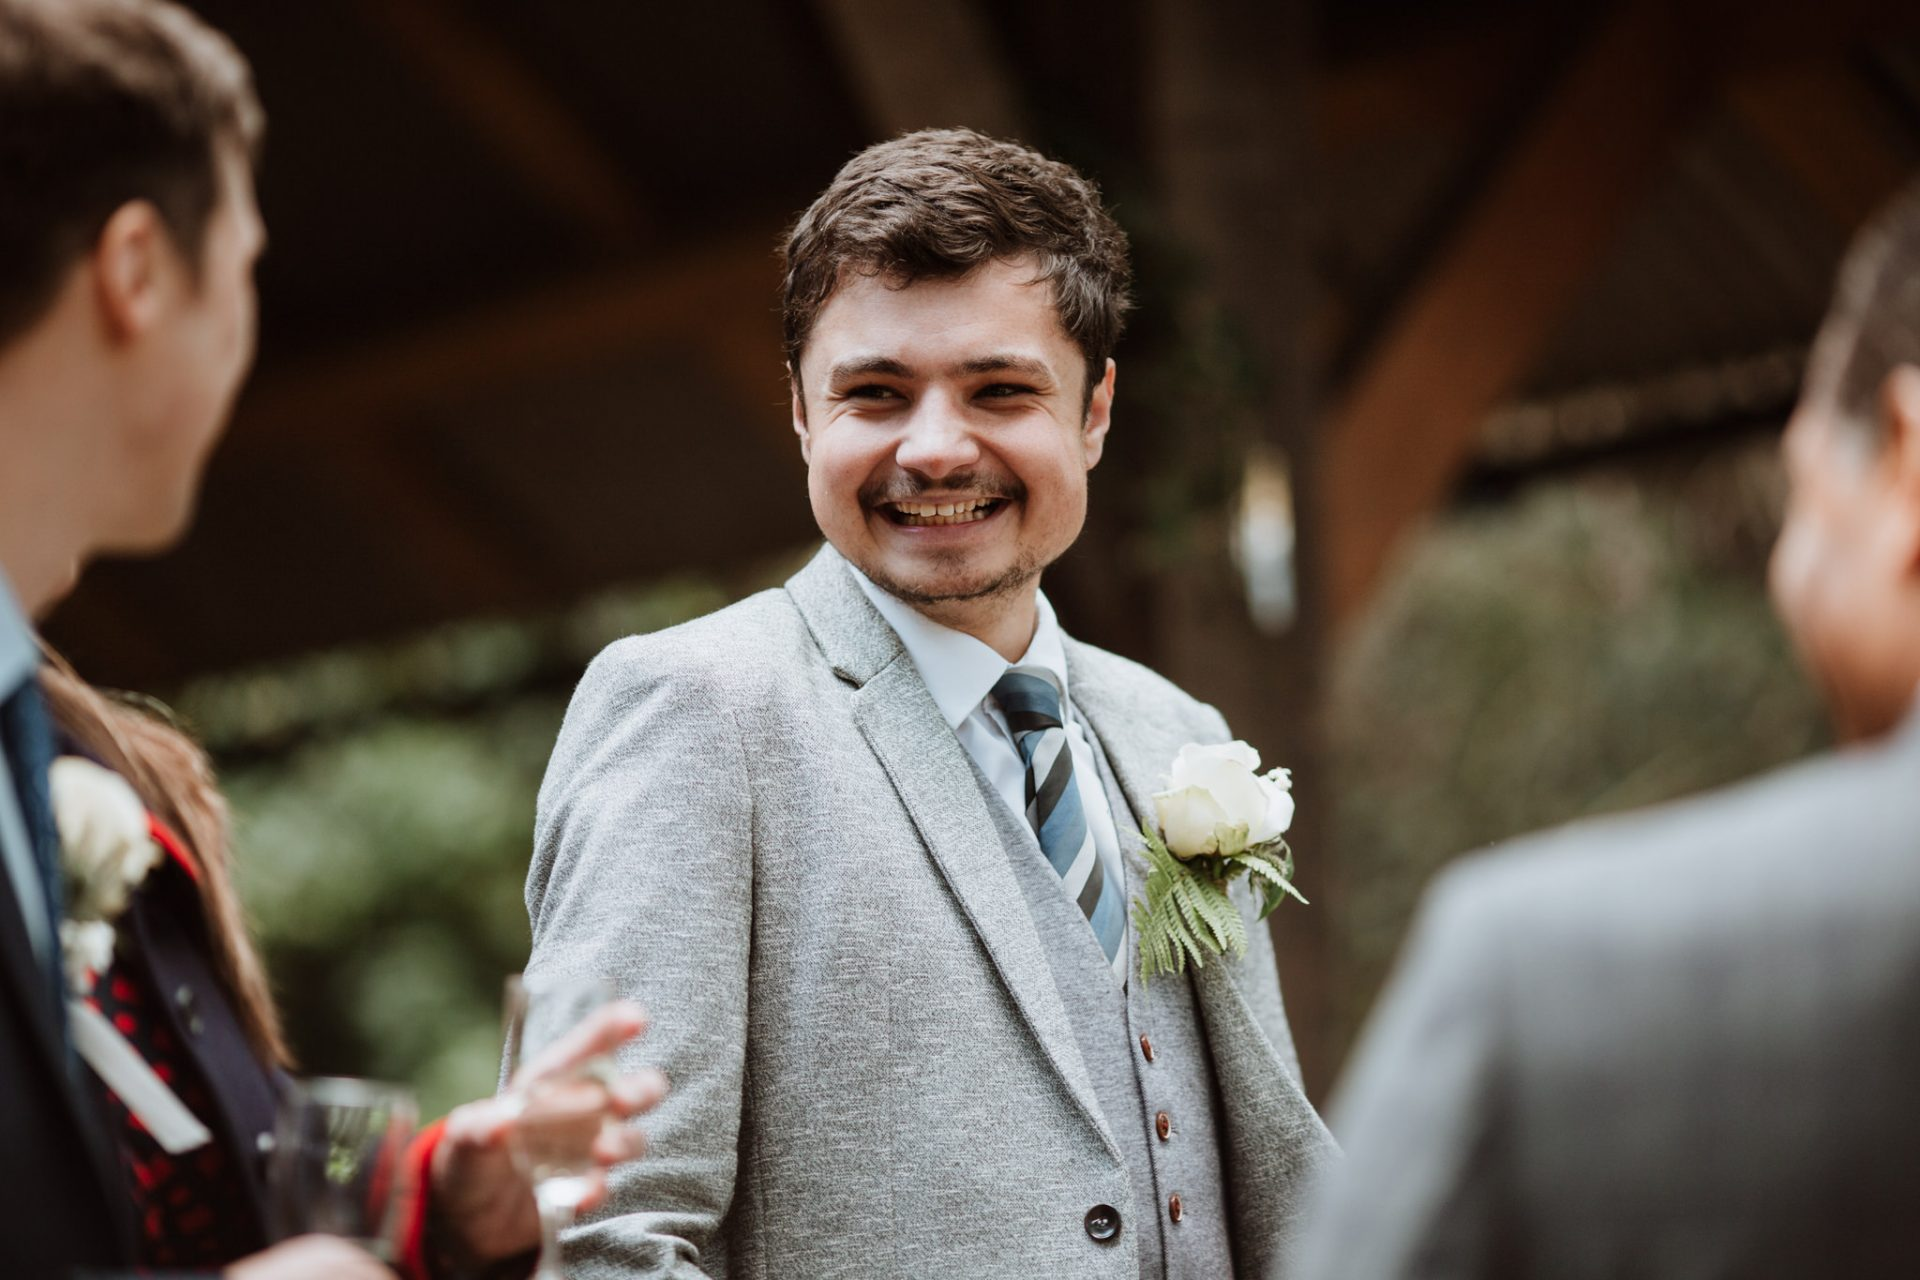 candid photograph wedding guest laughing